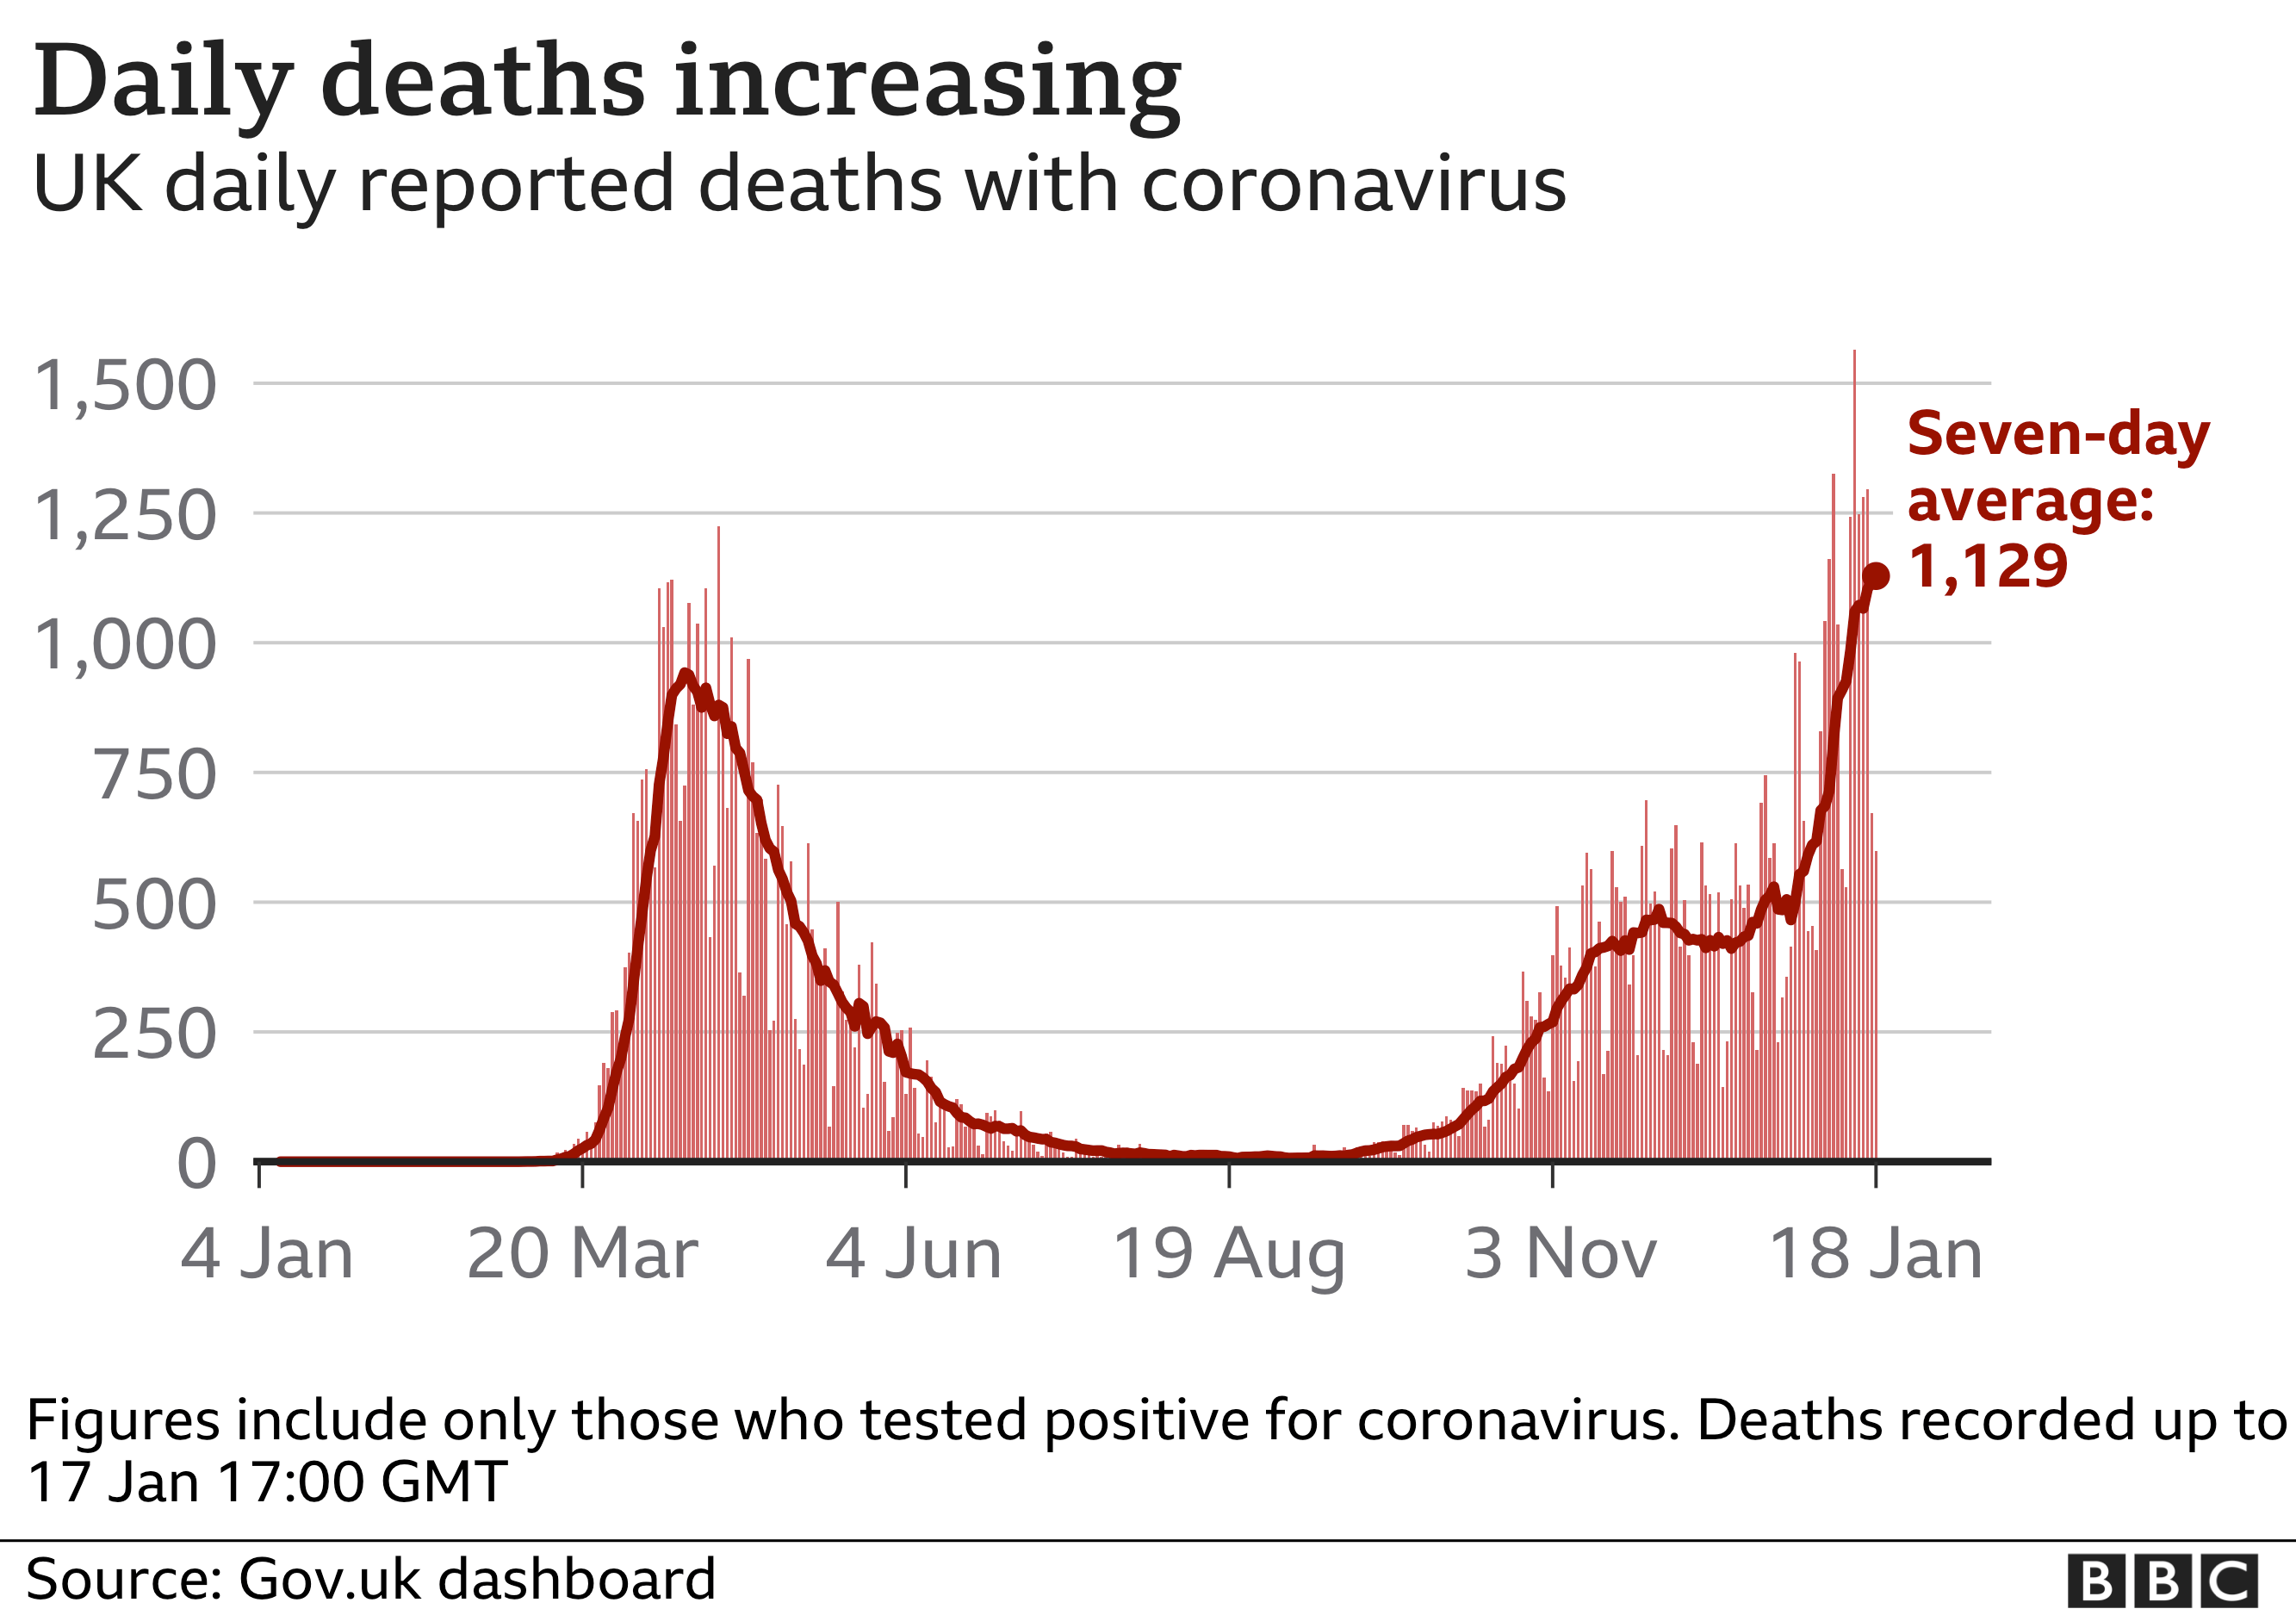 Chart showing daily deaths increasing in the UK. Updated 18 Jan.